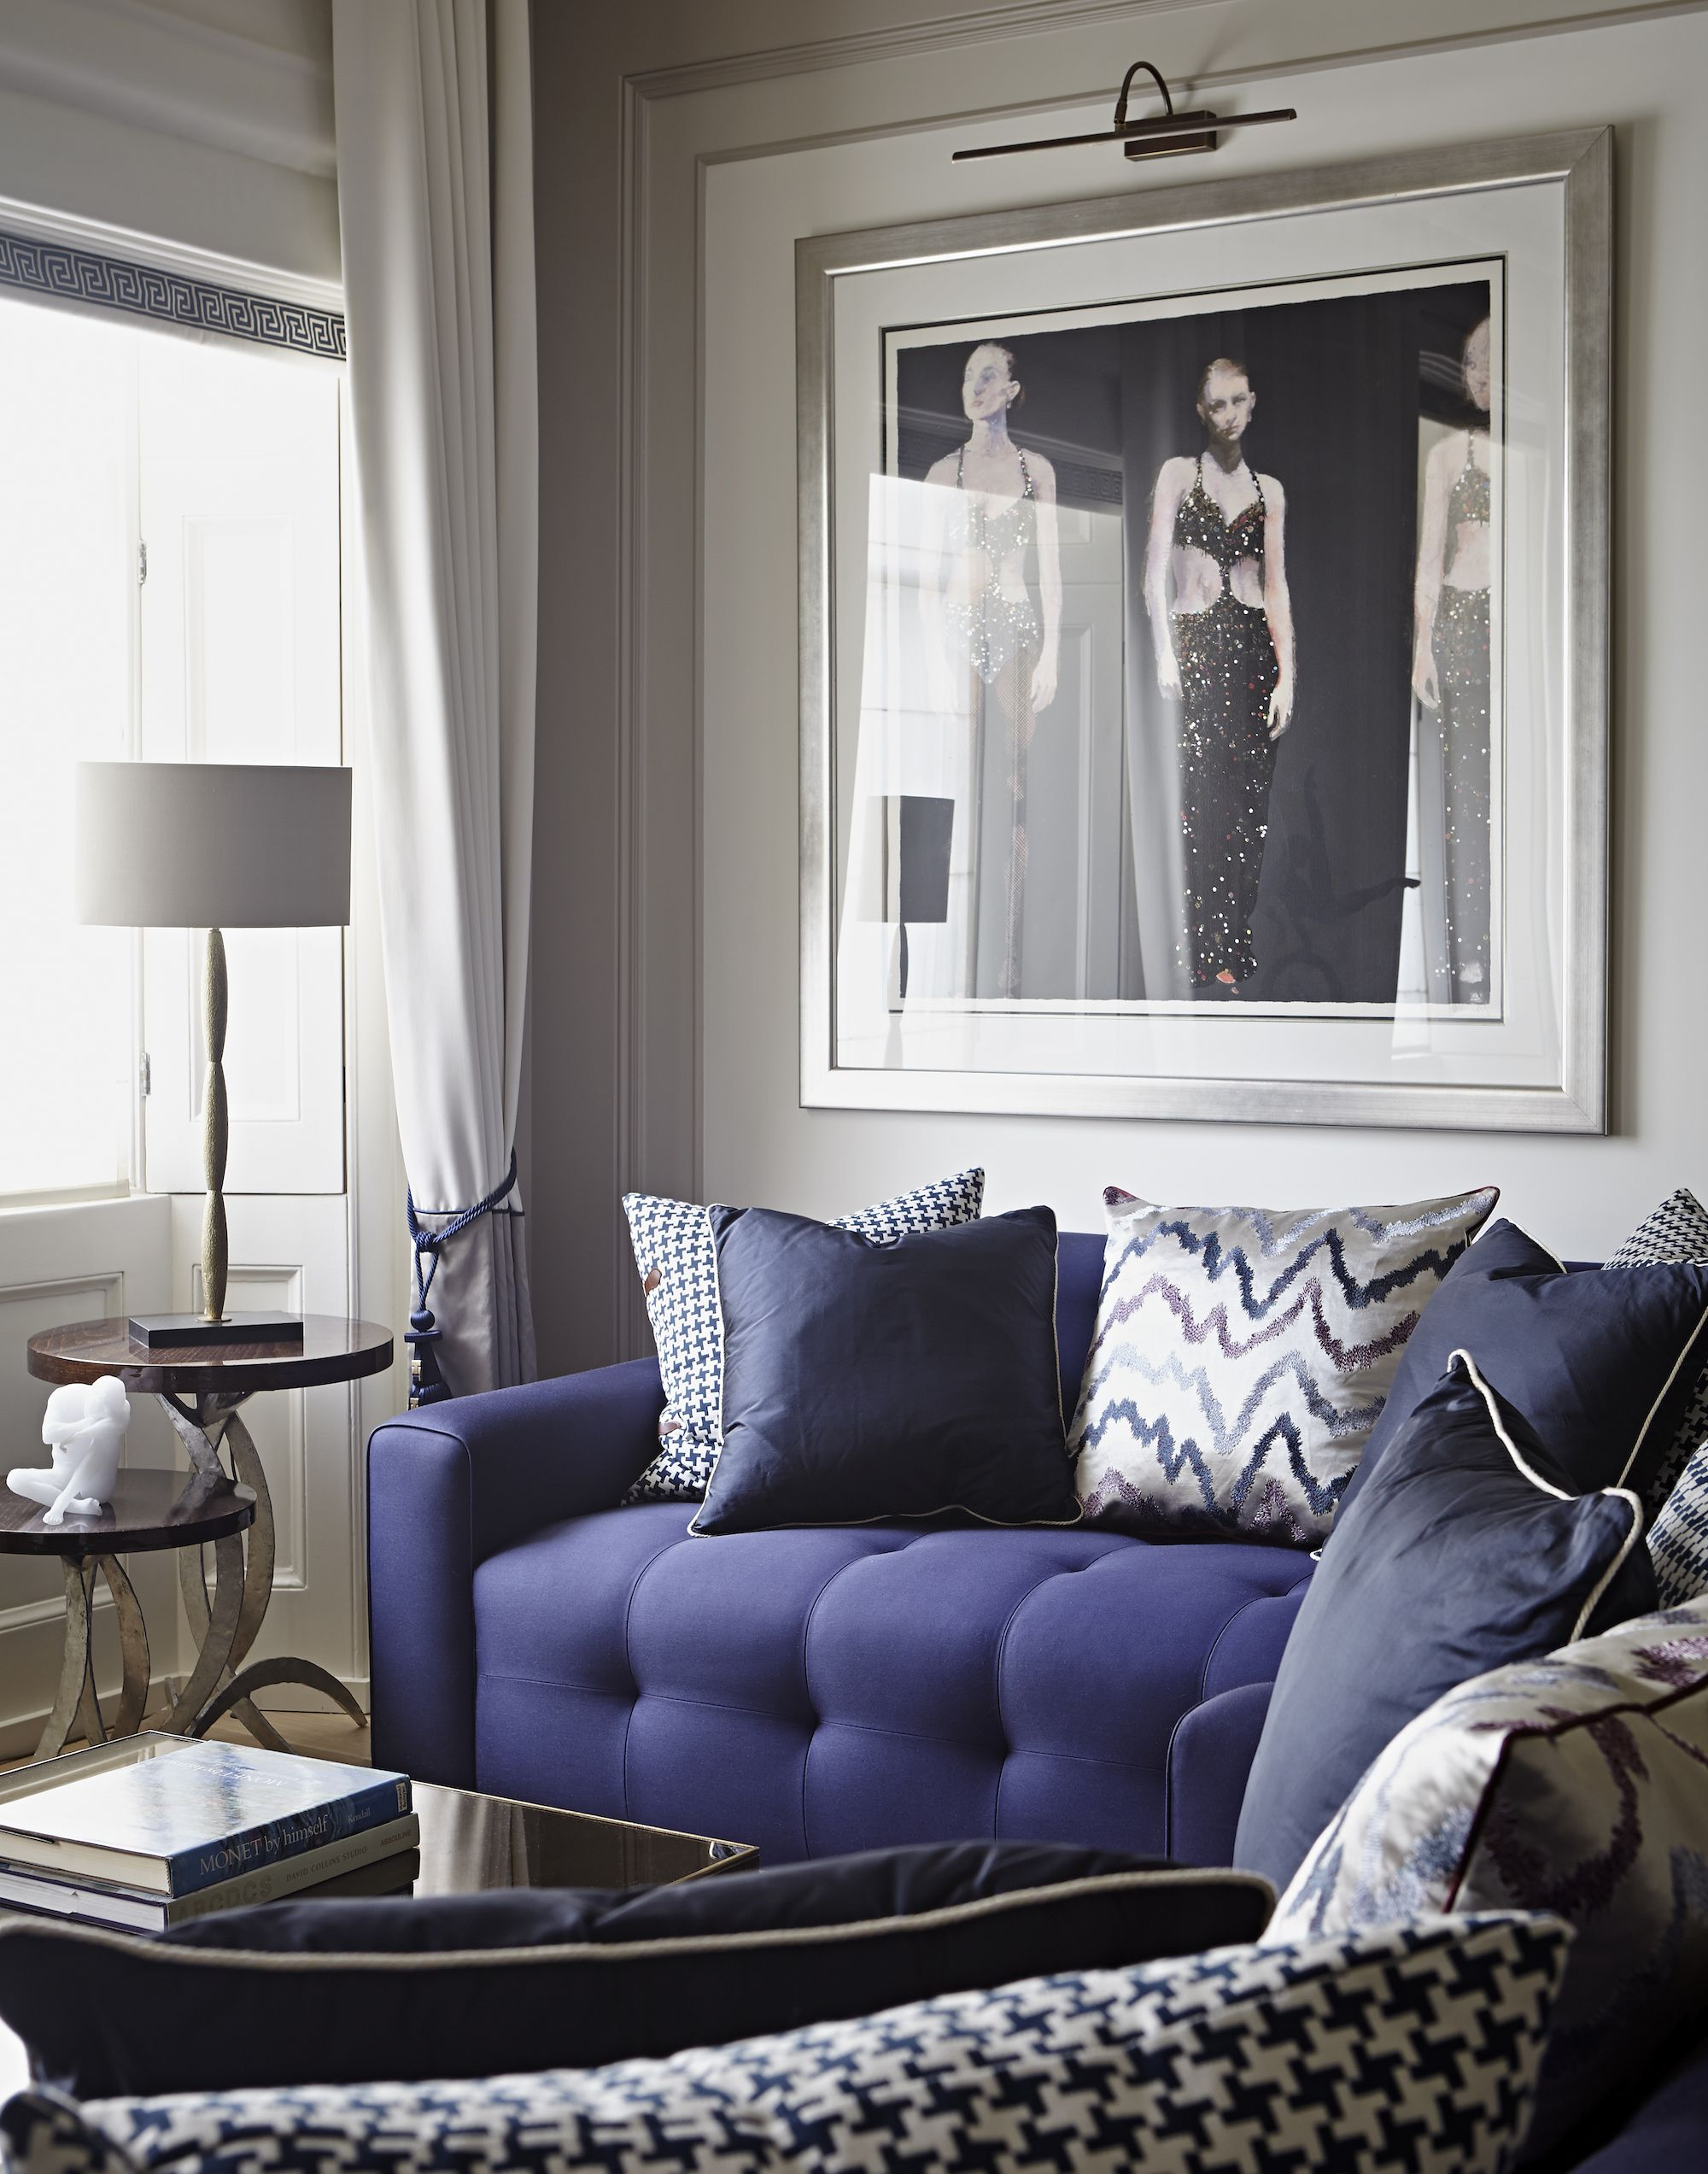 Explore living room designs and browse photos from the finest interior designers and architects on